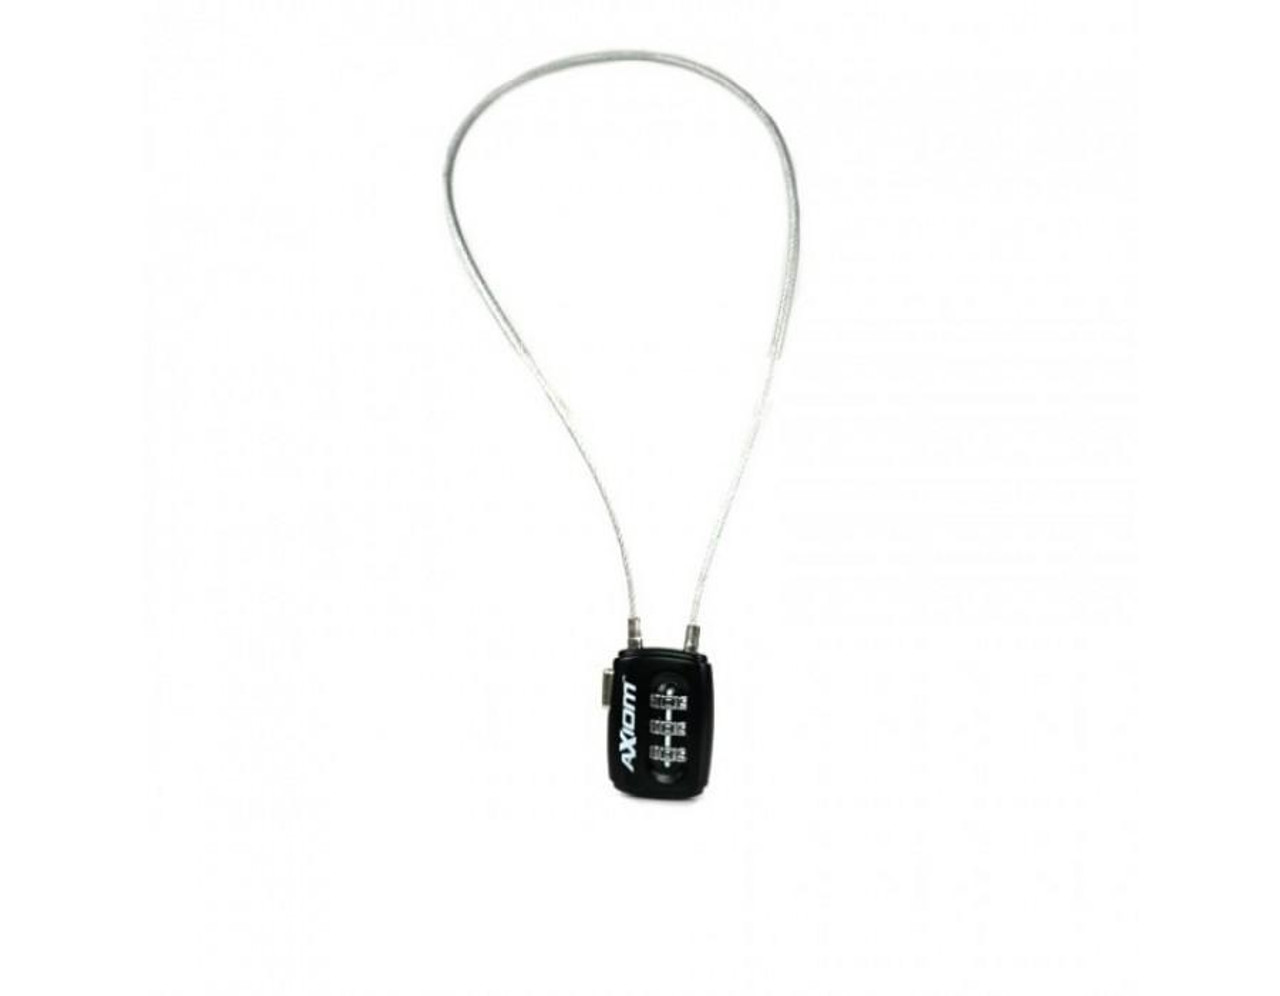 Axiom Combination Cable Lock - 300mm Long Cable